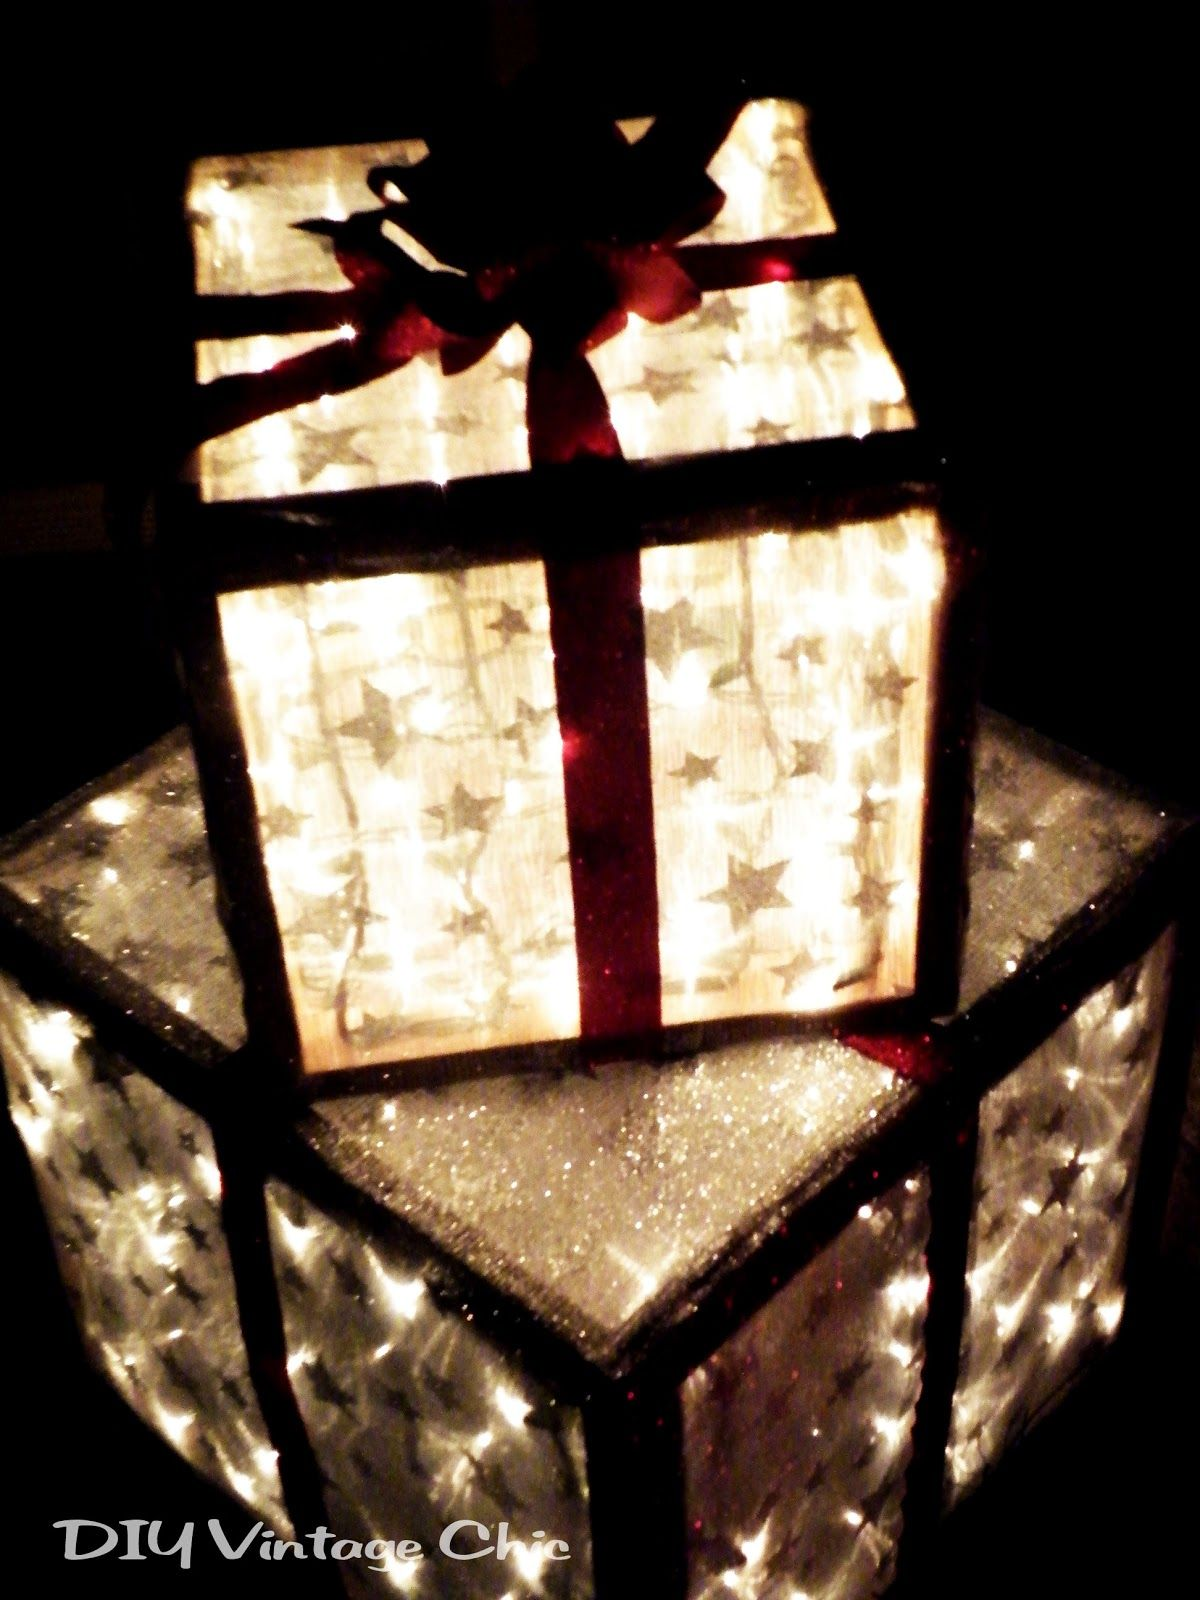 Diy vintage chic how to make lighted christmas presents for diy vintage chic how to make lighted christmas presents for outdoors aloadofball Gallery